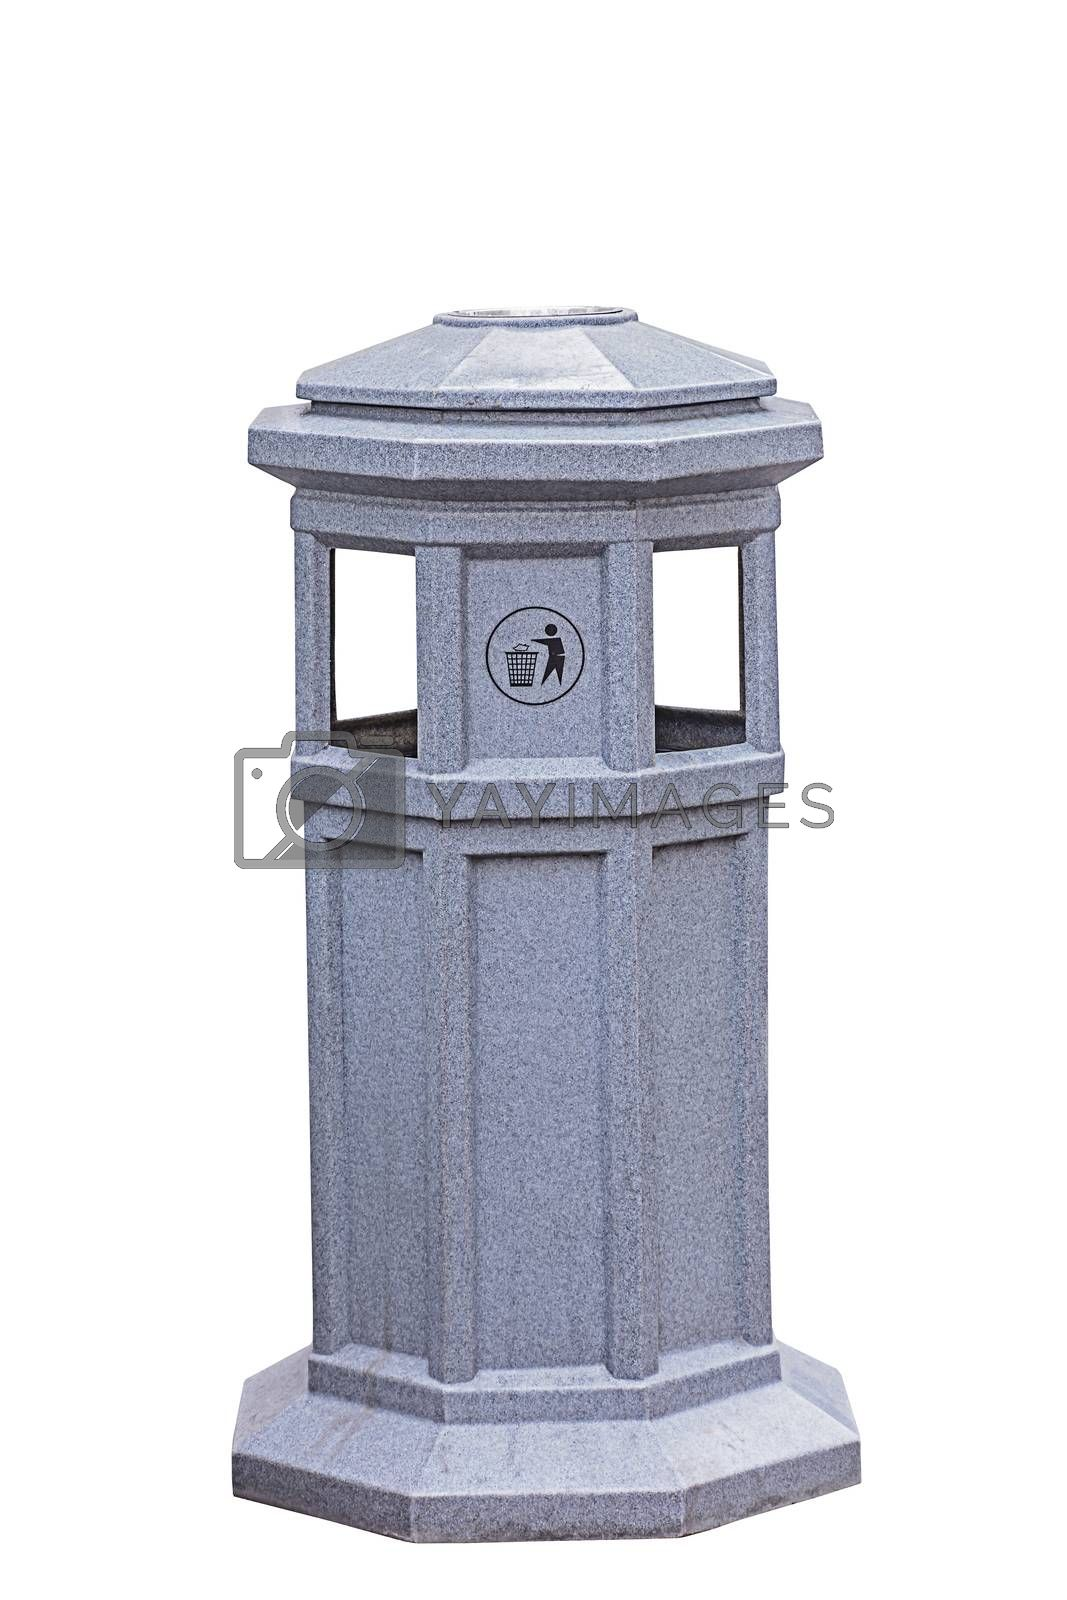 Royalty free image of Trash can by NuwatPhoto